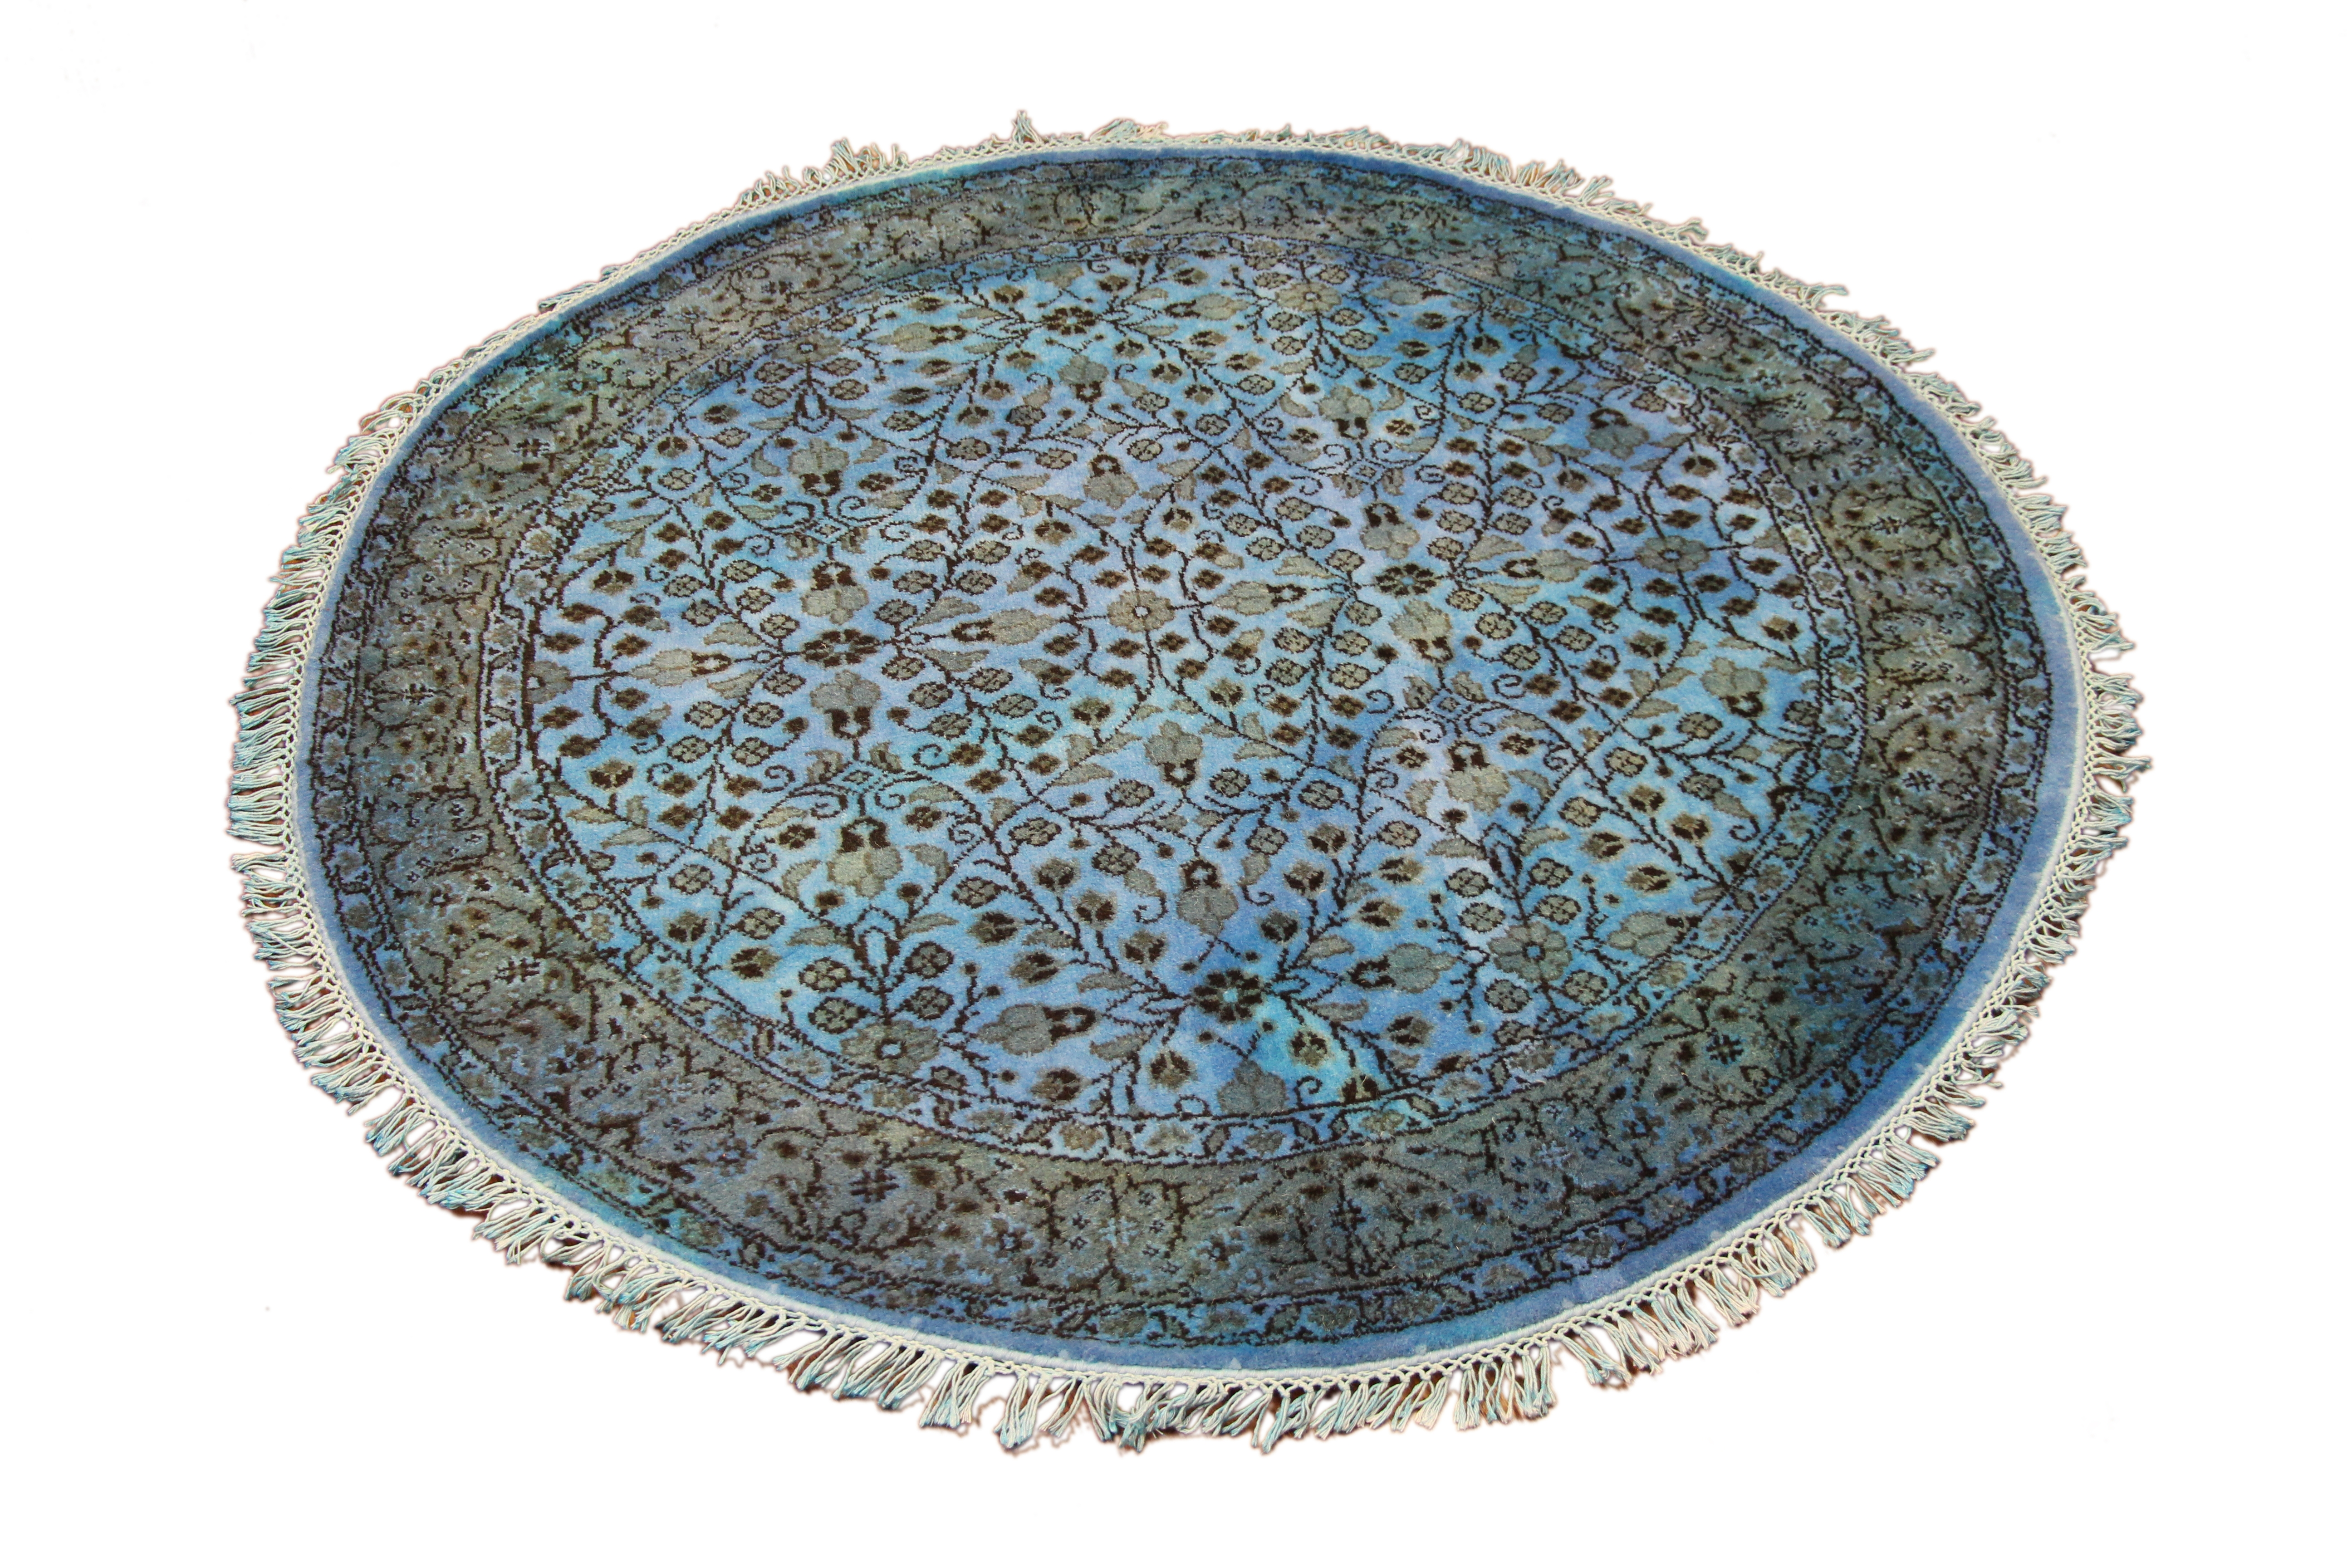 5 Ft Round Overdyed Rug Throughout Round Wool Rugs (Image 3 of 15)